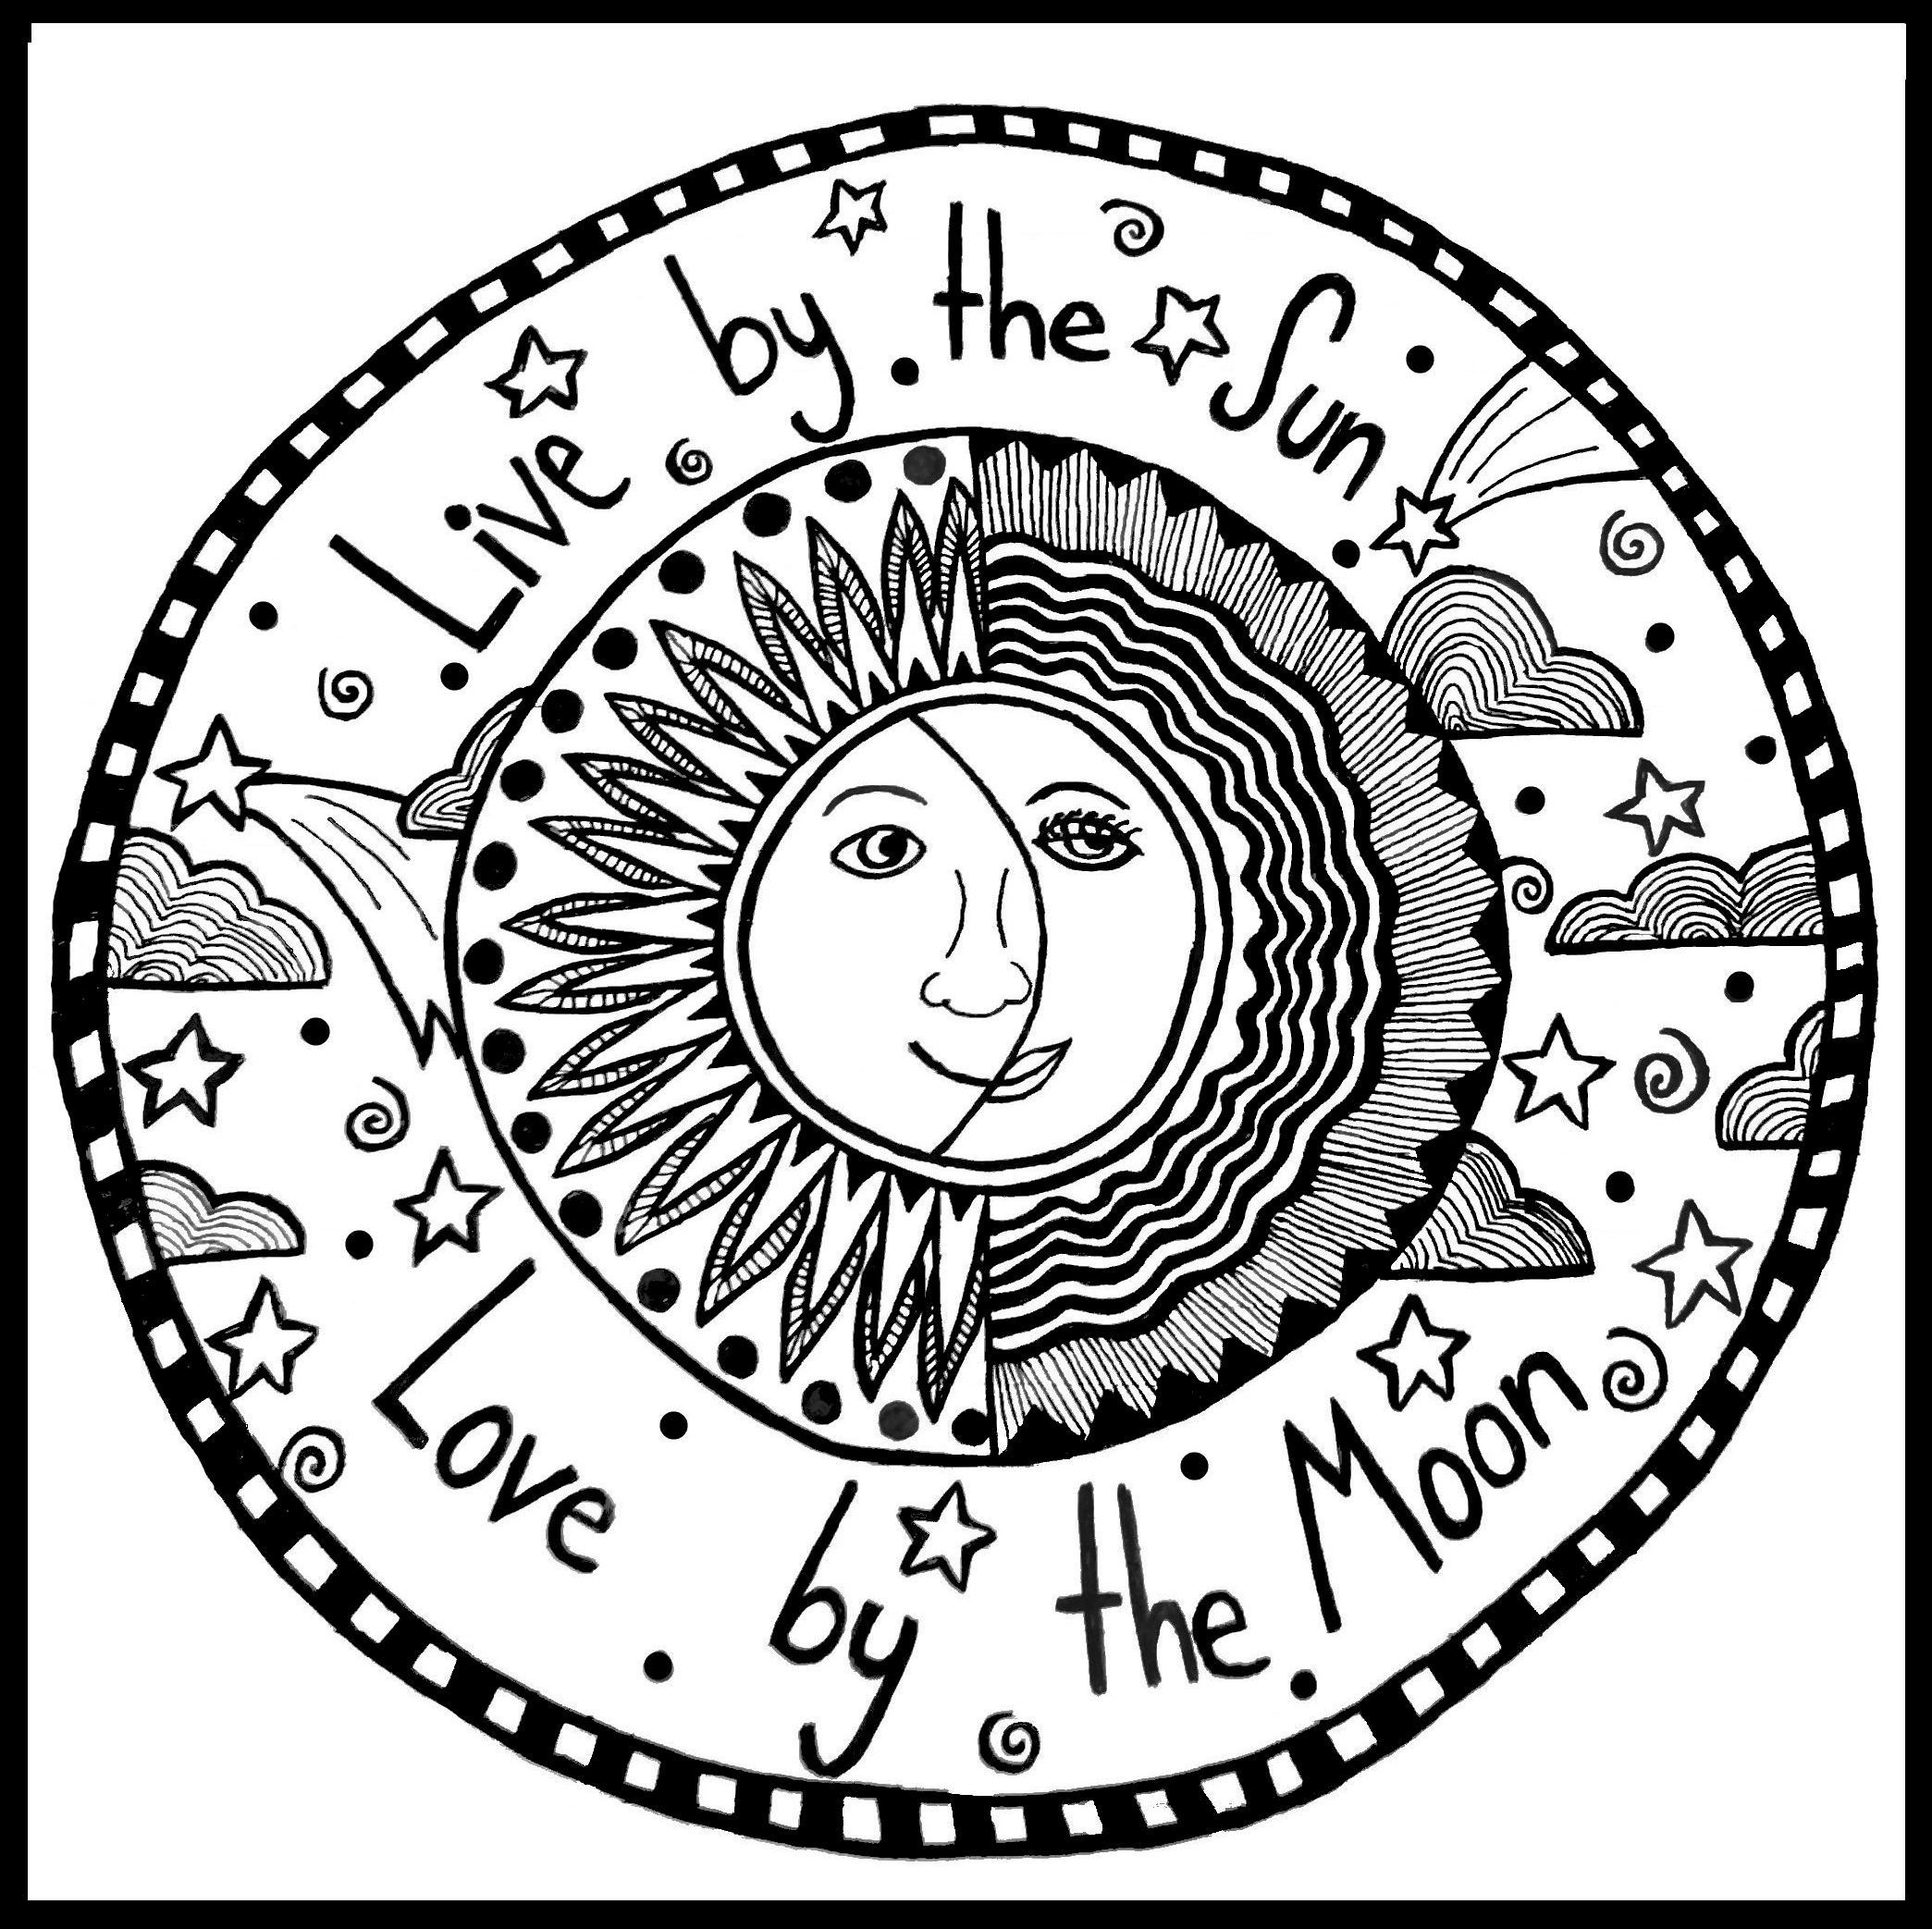 Sun And Moon Coloring Pages 2019 Http Www Wallpaperartdesignhd Us Sun And Moon Coloring Pages 2019 470 Moon Coloring Pages Coloring Pages Star Coloring Pages